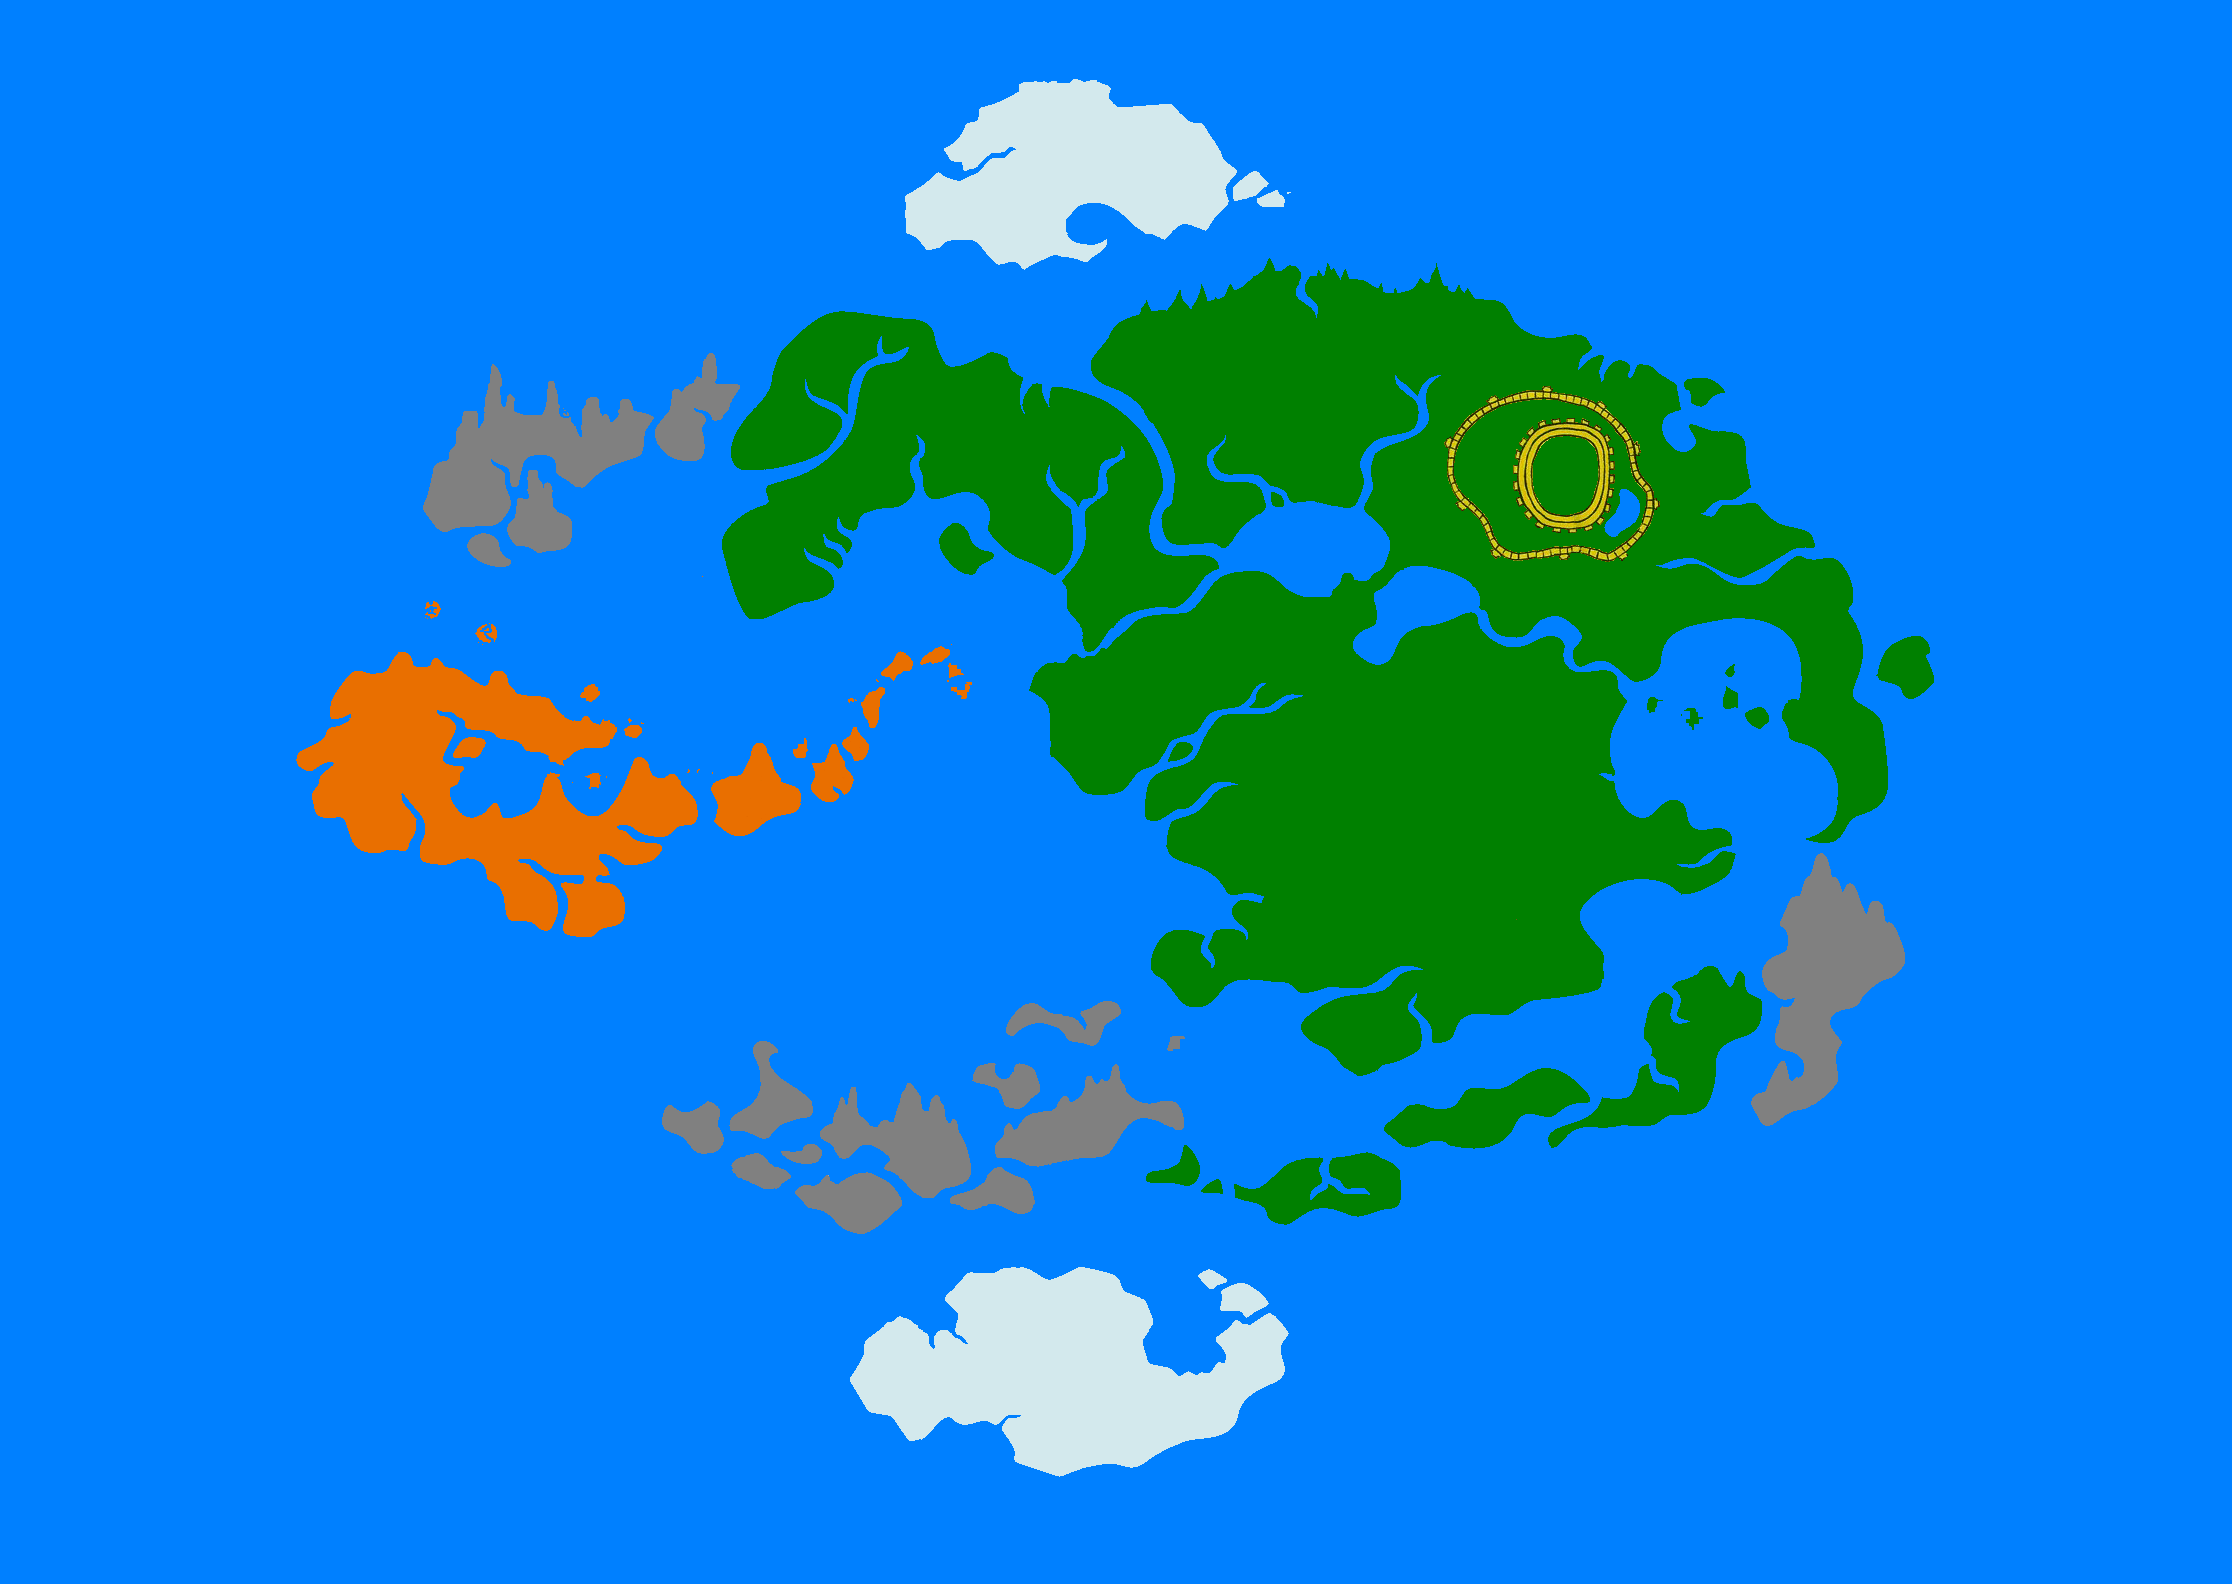 Avatar The Last Airbender Map By 33k7